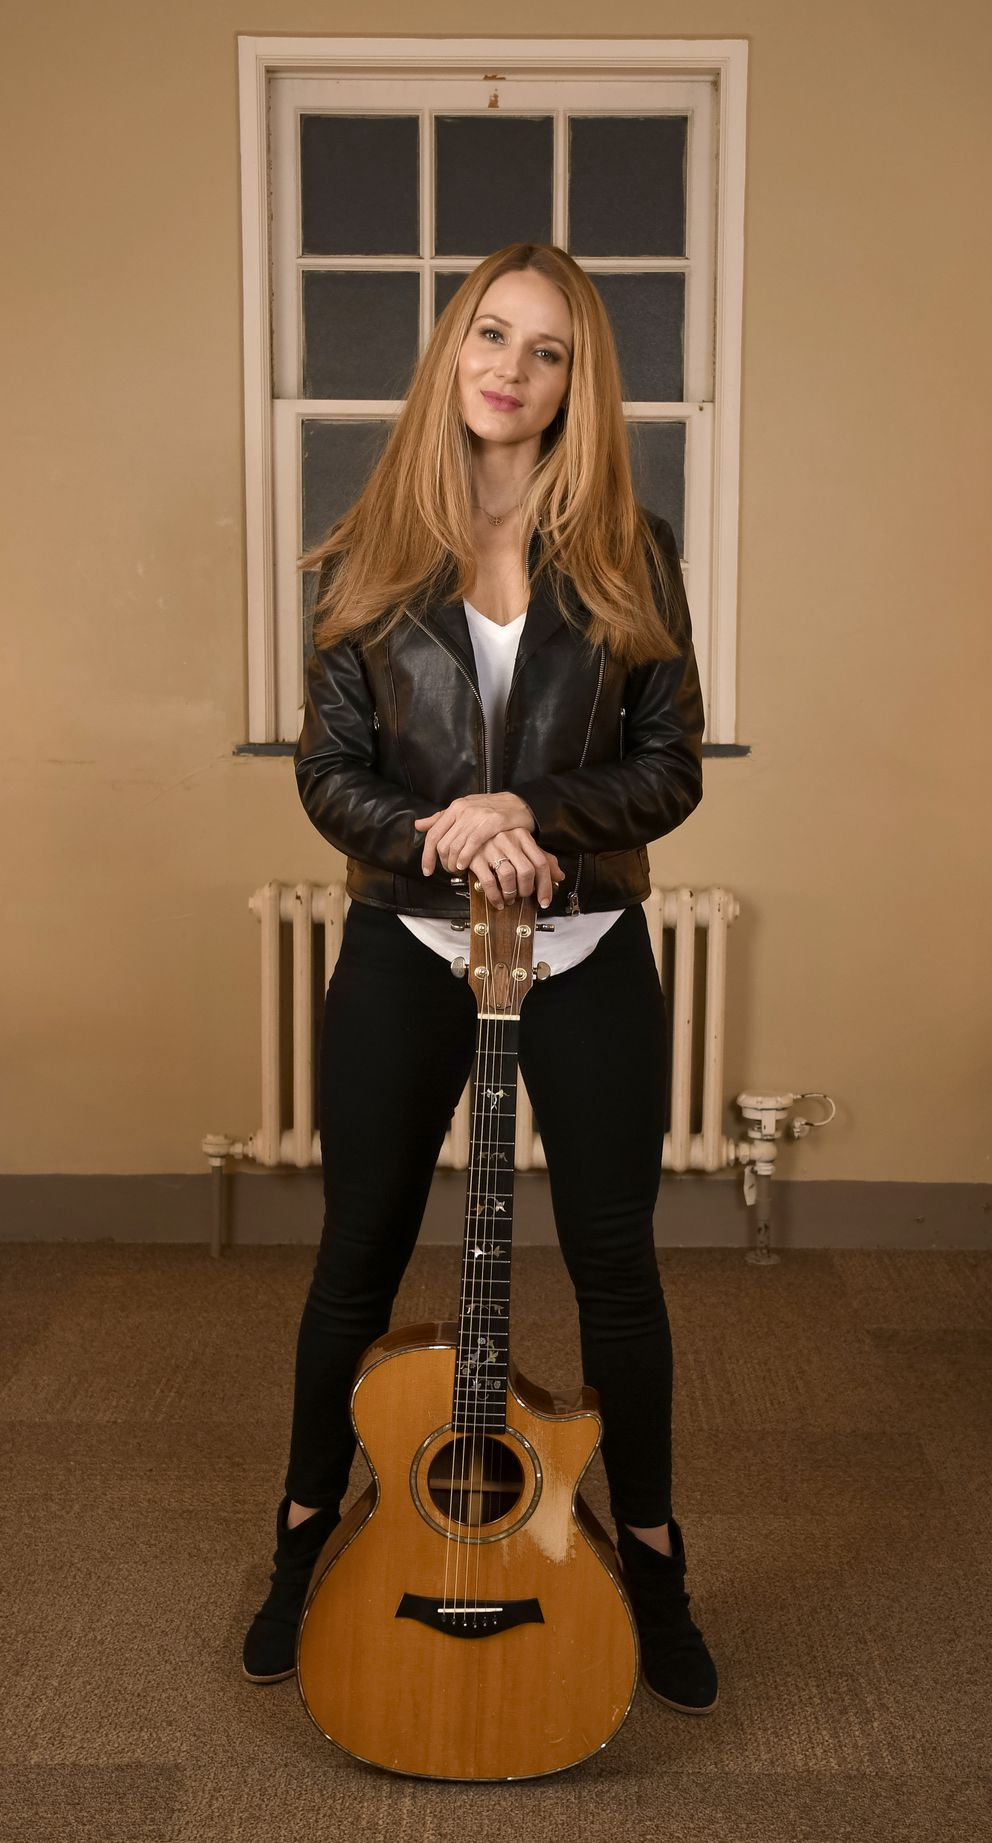 Singer-songwriter Jewel at the Hershey Theatre in Hershey, Pennsylvania. (Photo for The Washington Post by Eileen Blass)